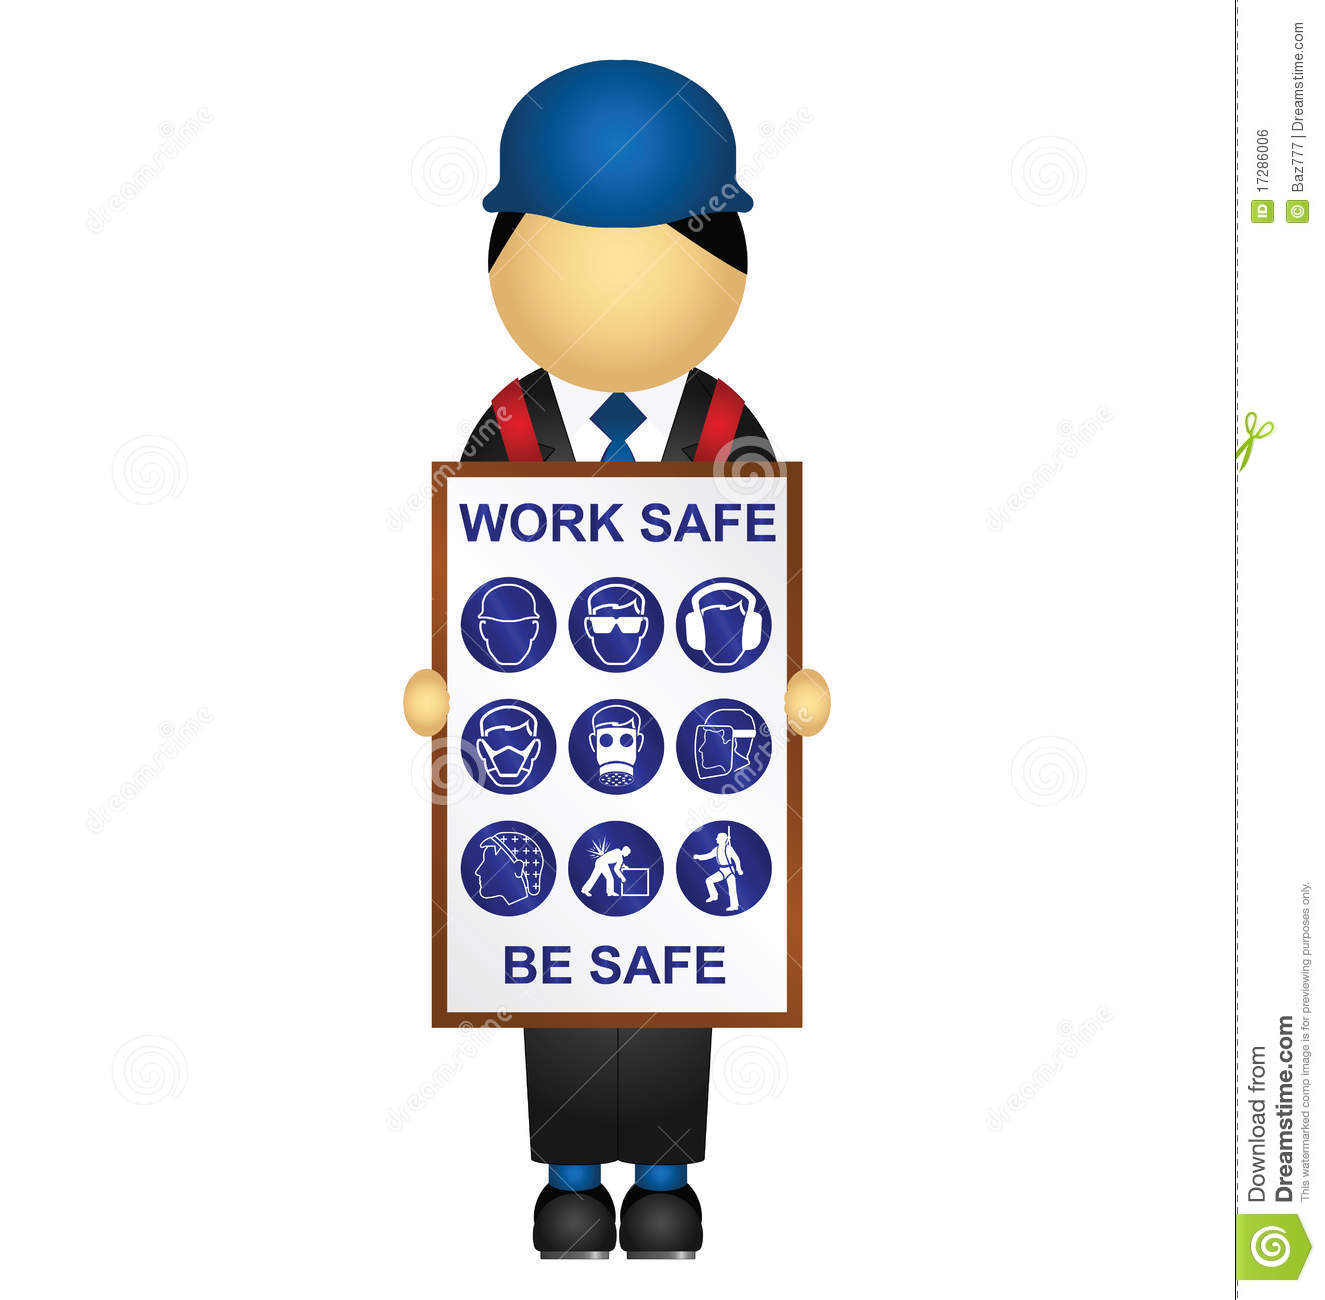 Health and safety clipart 1 » Clipart Station.